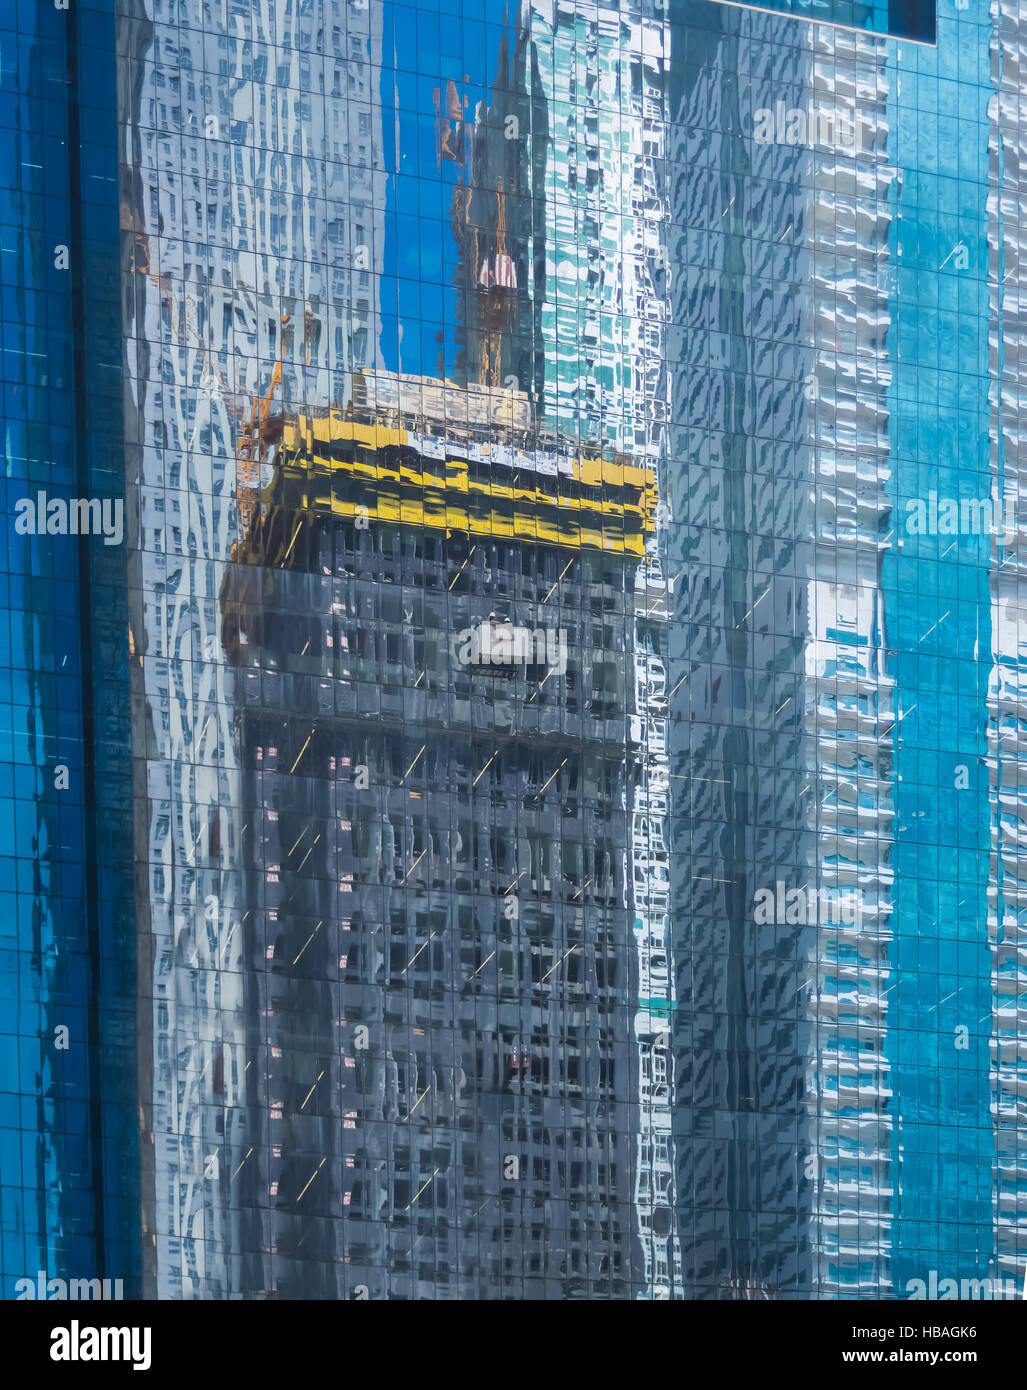 REFLECTION OF BUILDINGS, CONSTRUCTION, WORK. Stock Photo